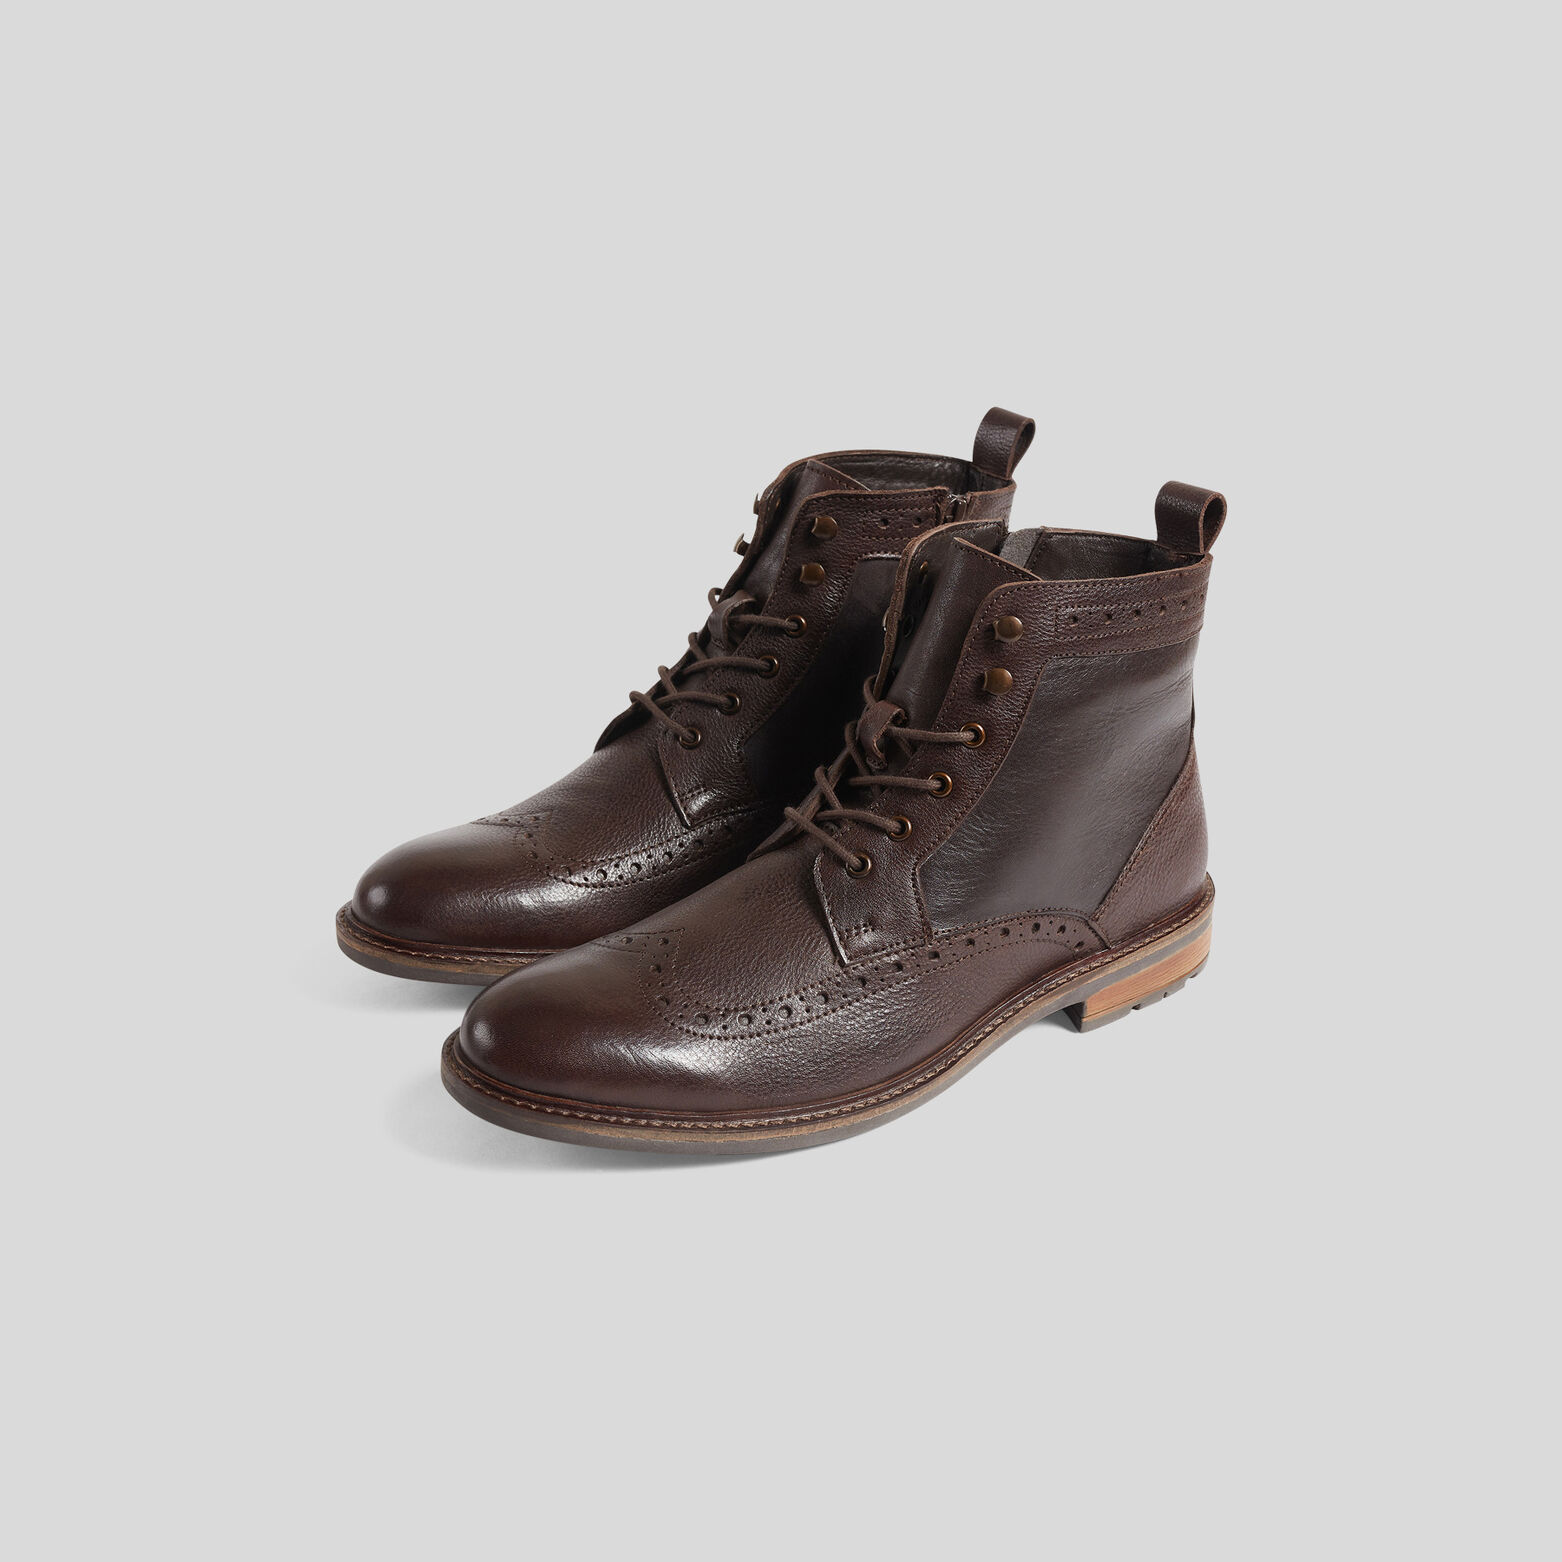 Boots montantes fleuries